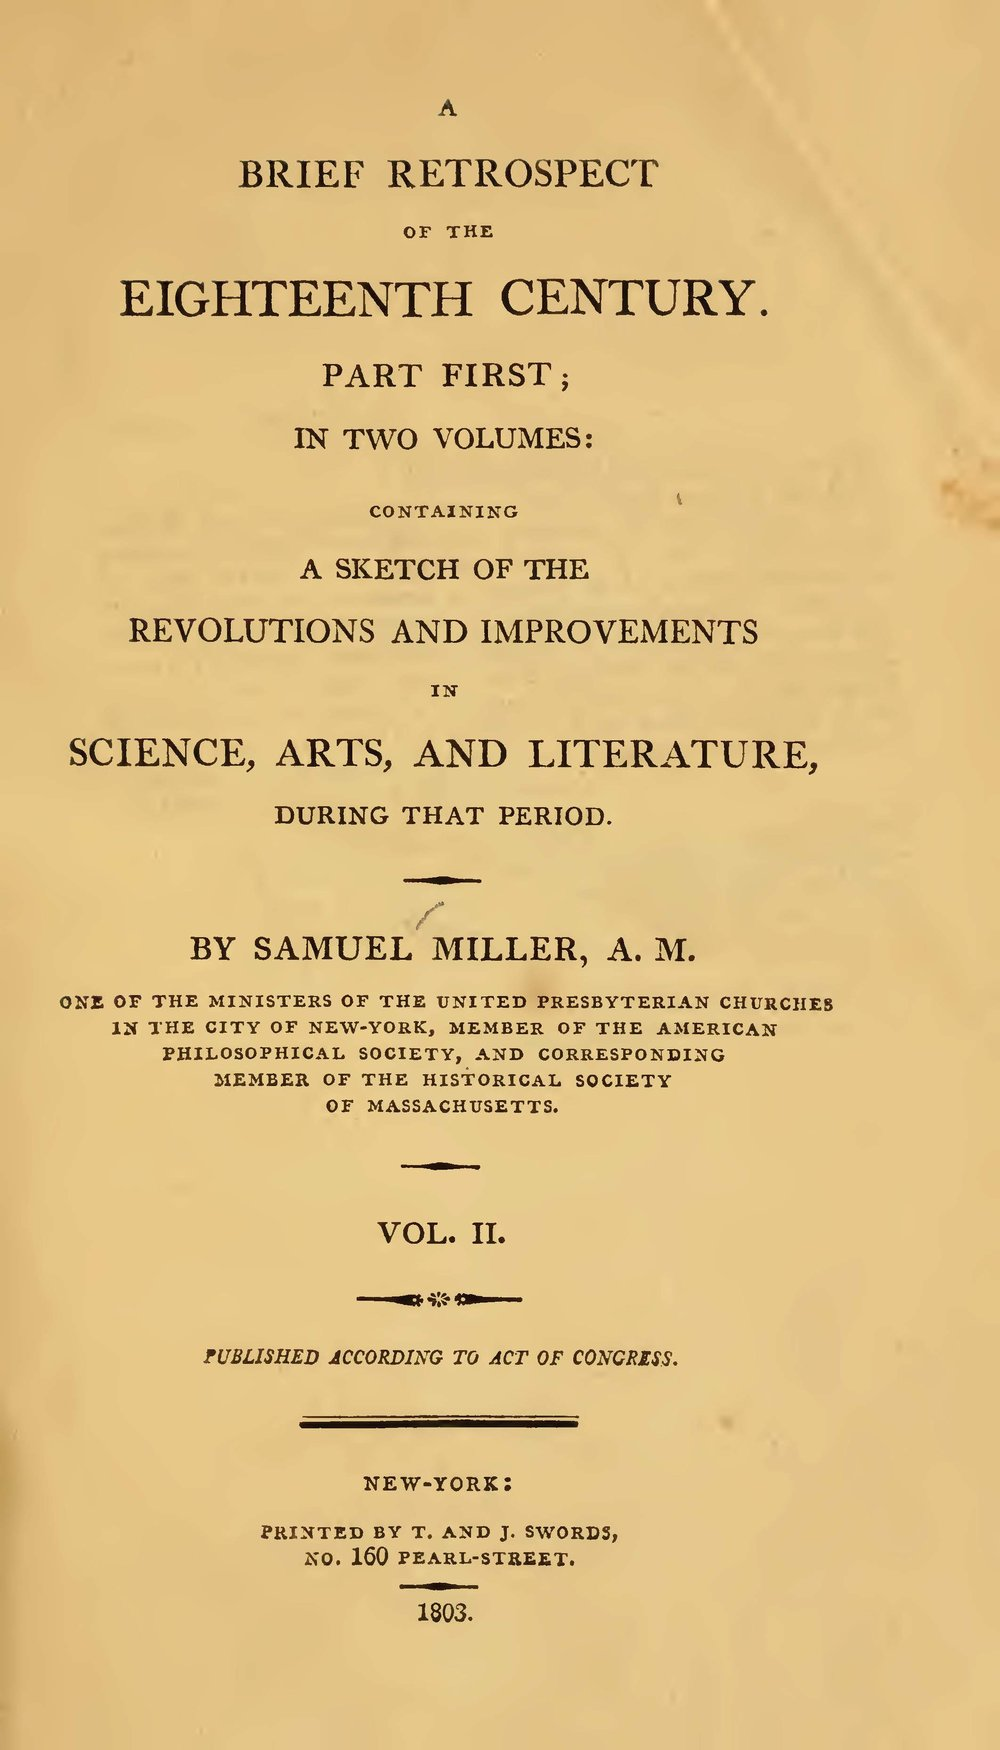 Miller, Samuel, A Brief Retrospect of the Eighteenth Century, Vol. 2 Title Page.jpg